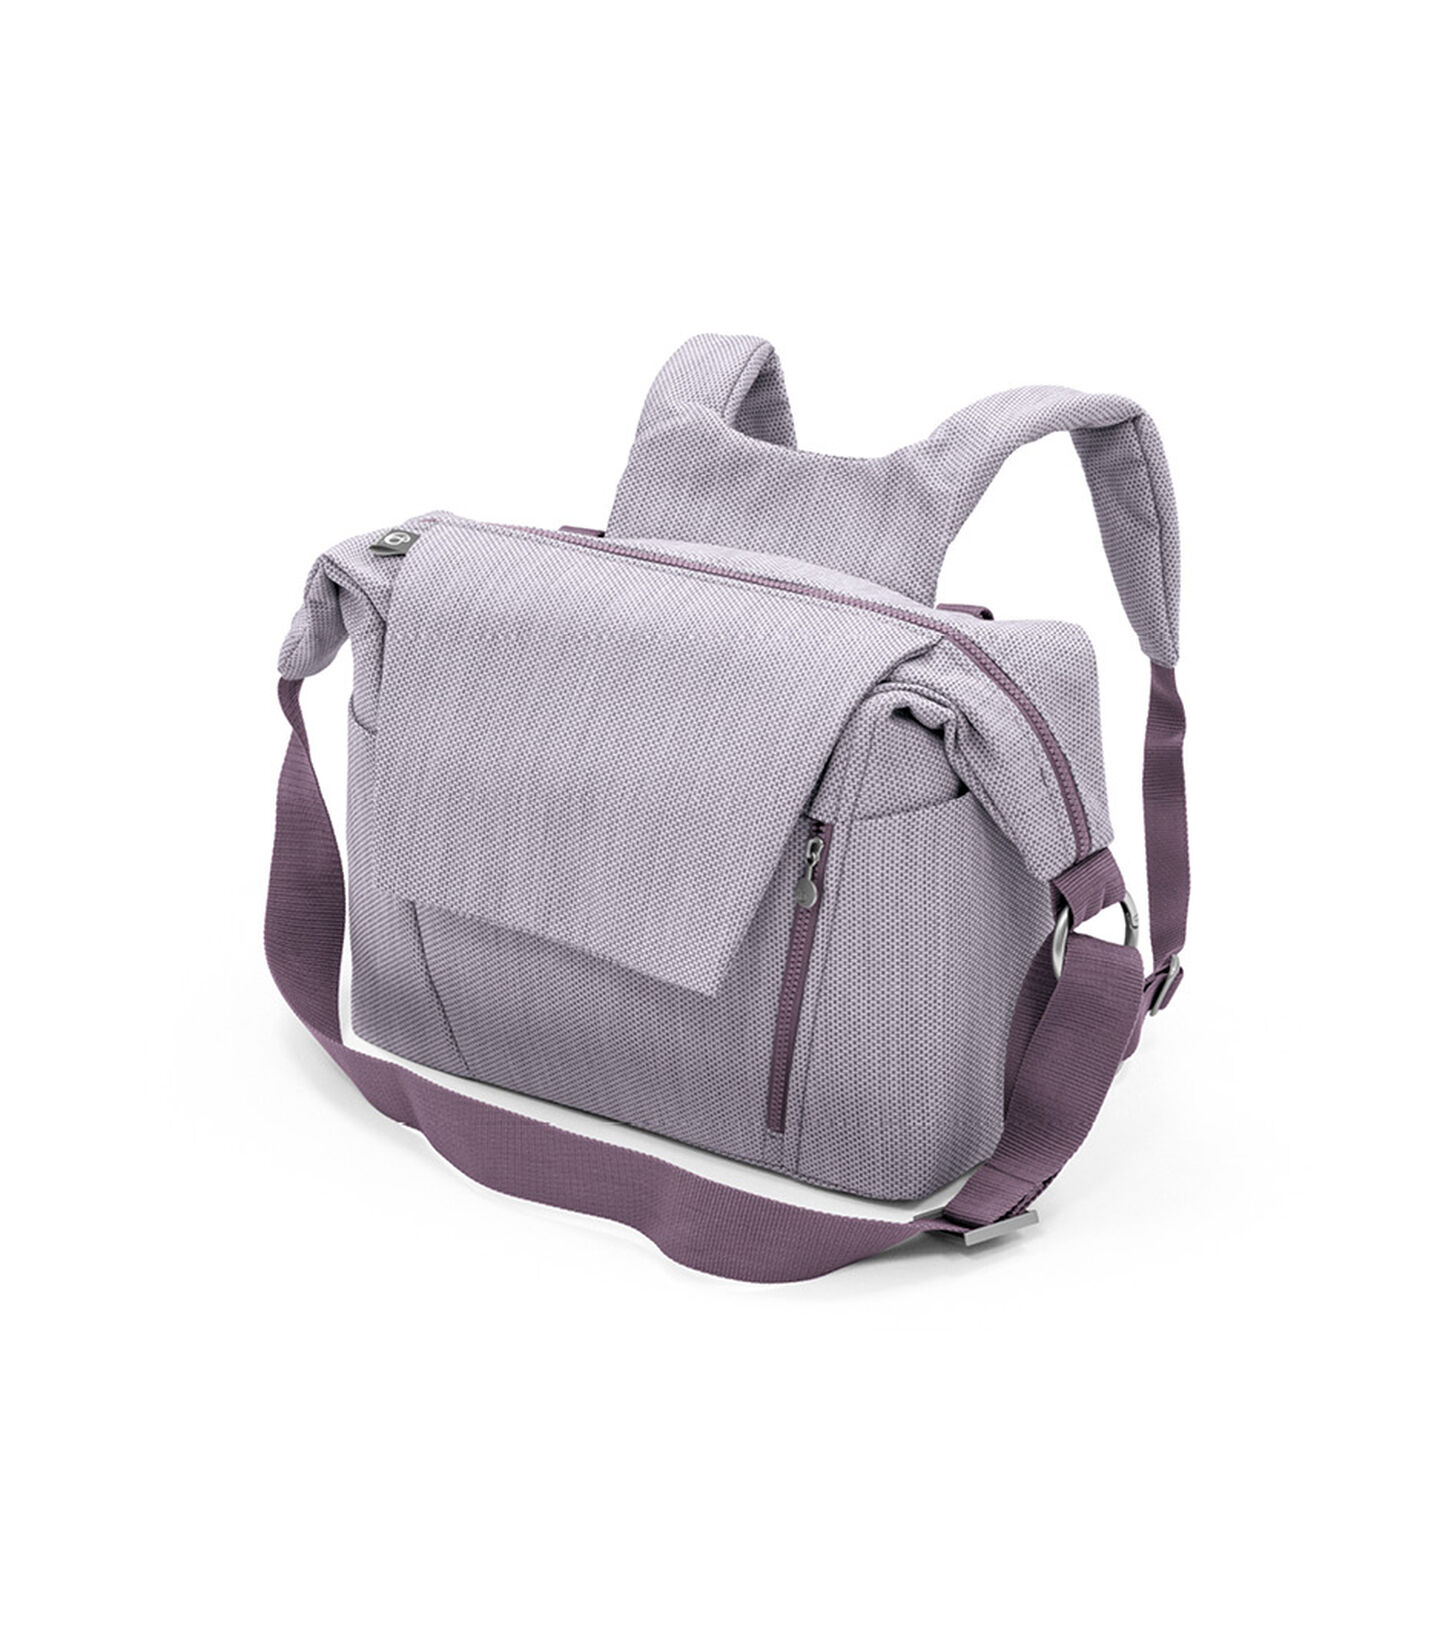 Stokke® Changing bag Brushed Lilac, Lila, mainview view 2